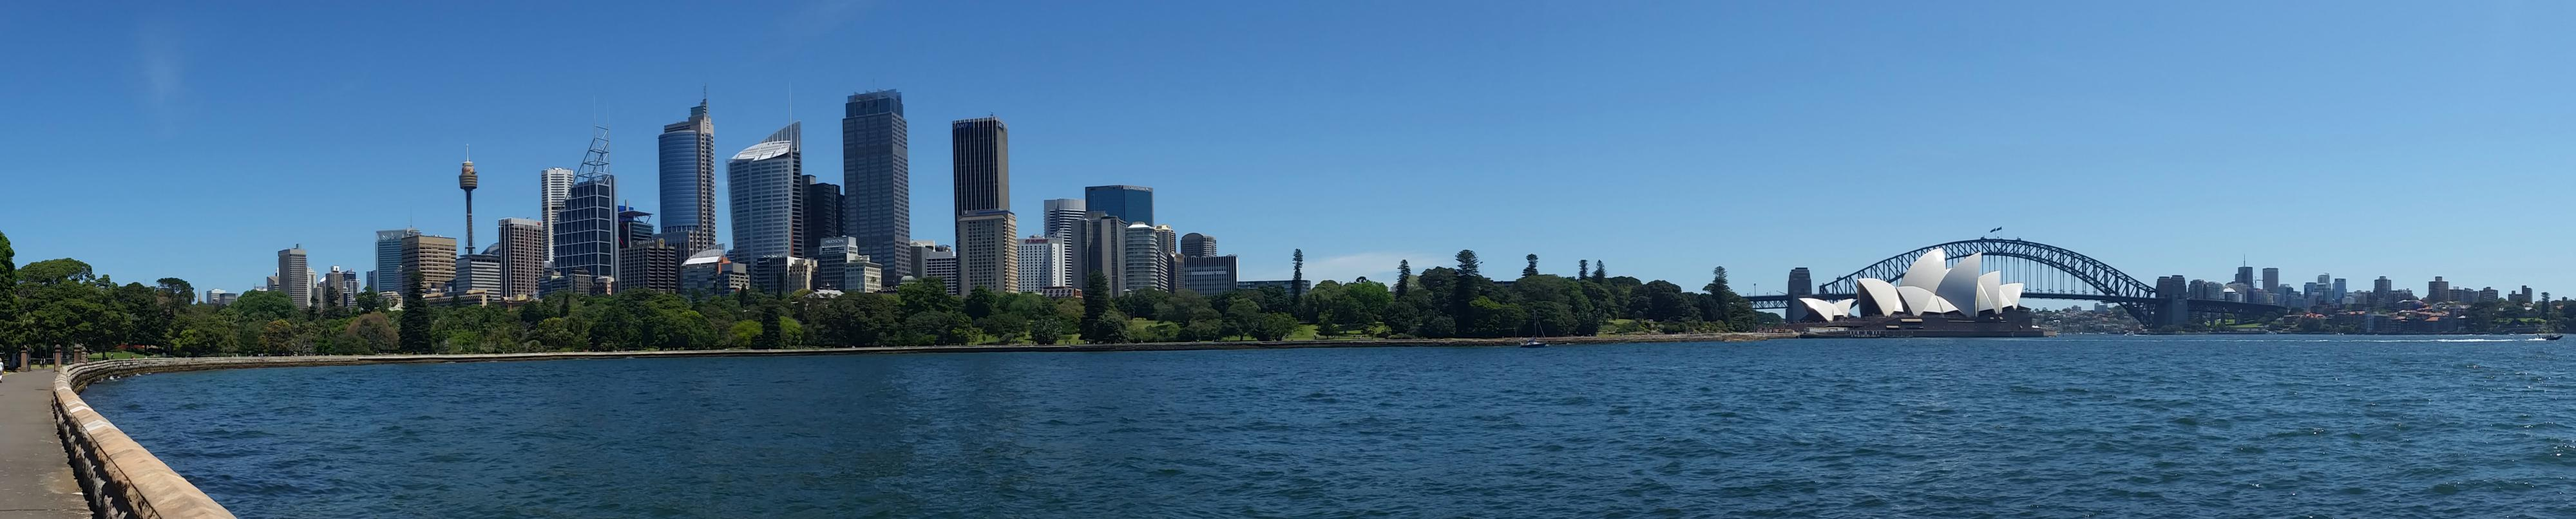 Stunning view of Sydney from Mrs Macquarie's Chair lookout